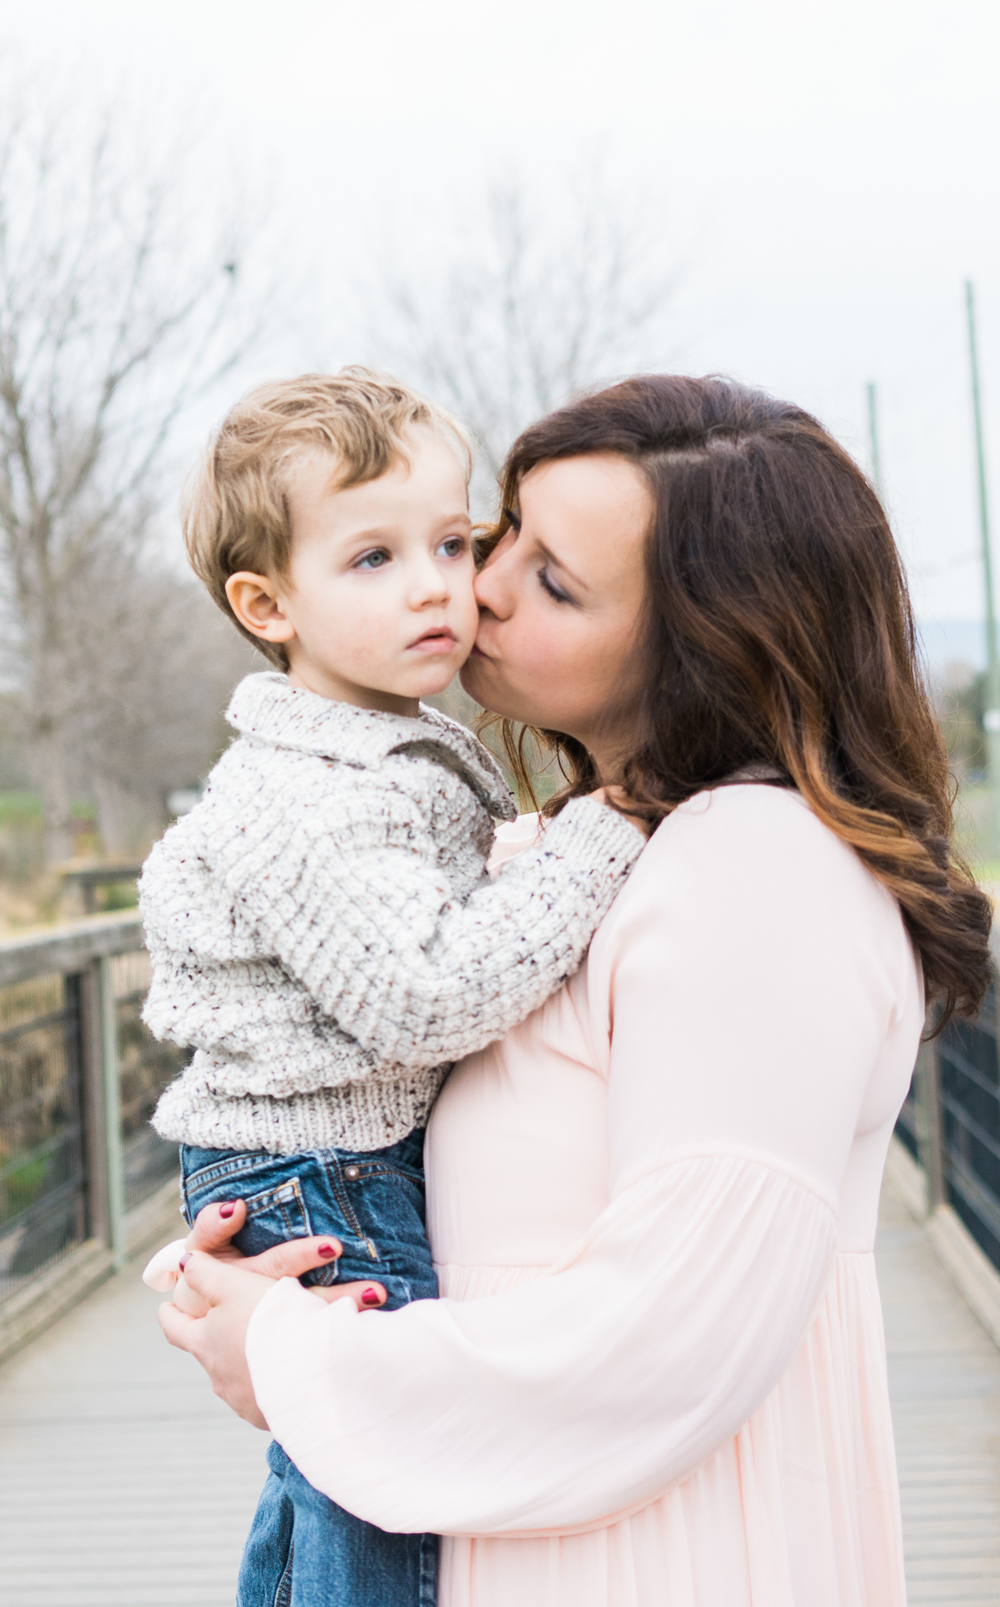 mother-son-photography-poses-sunnyvale-baylands-park-family-photography-by-afewgoodclicks